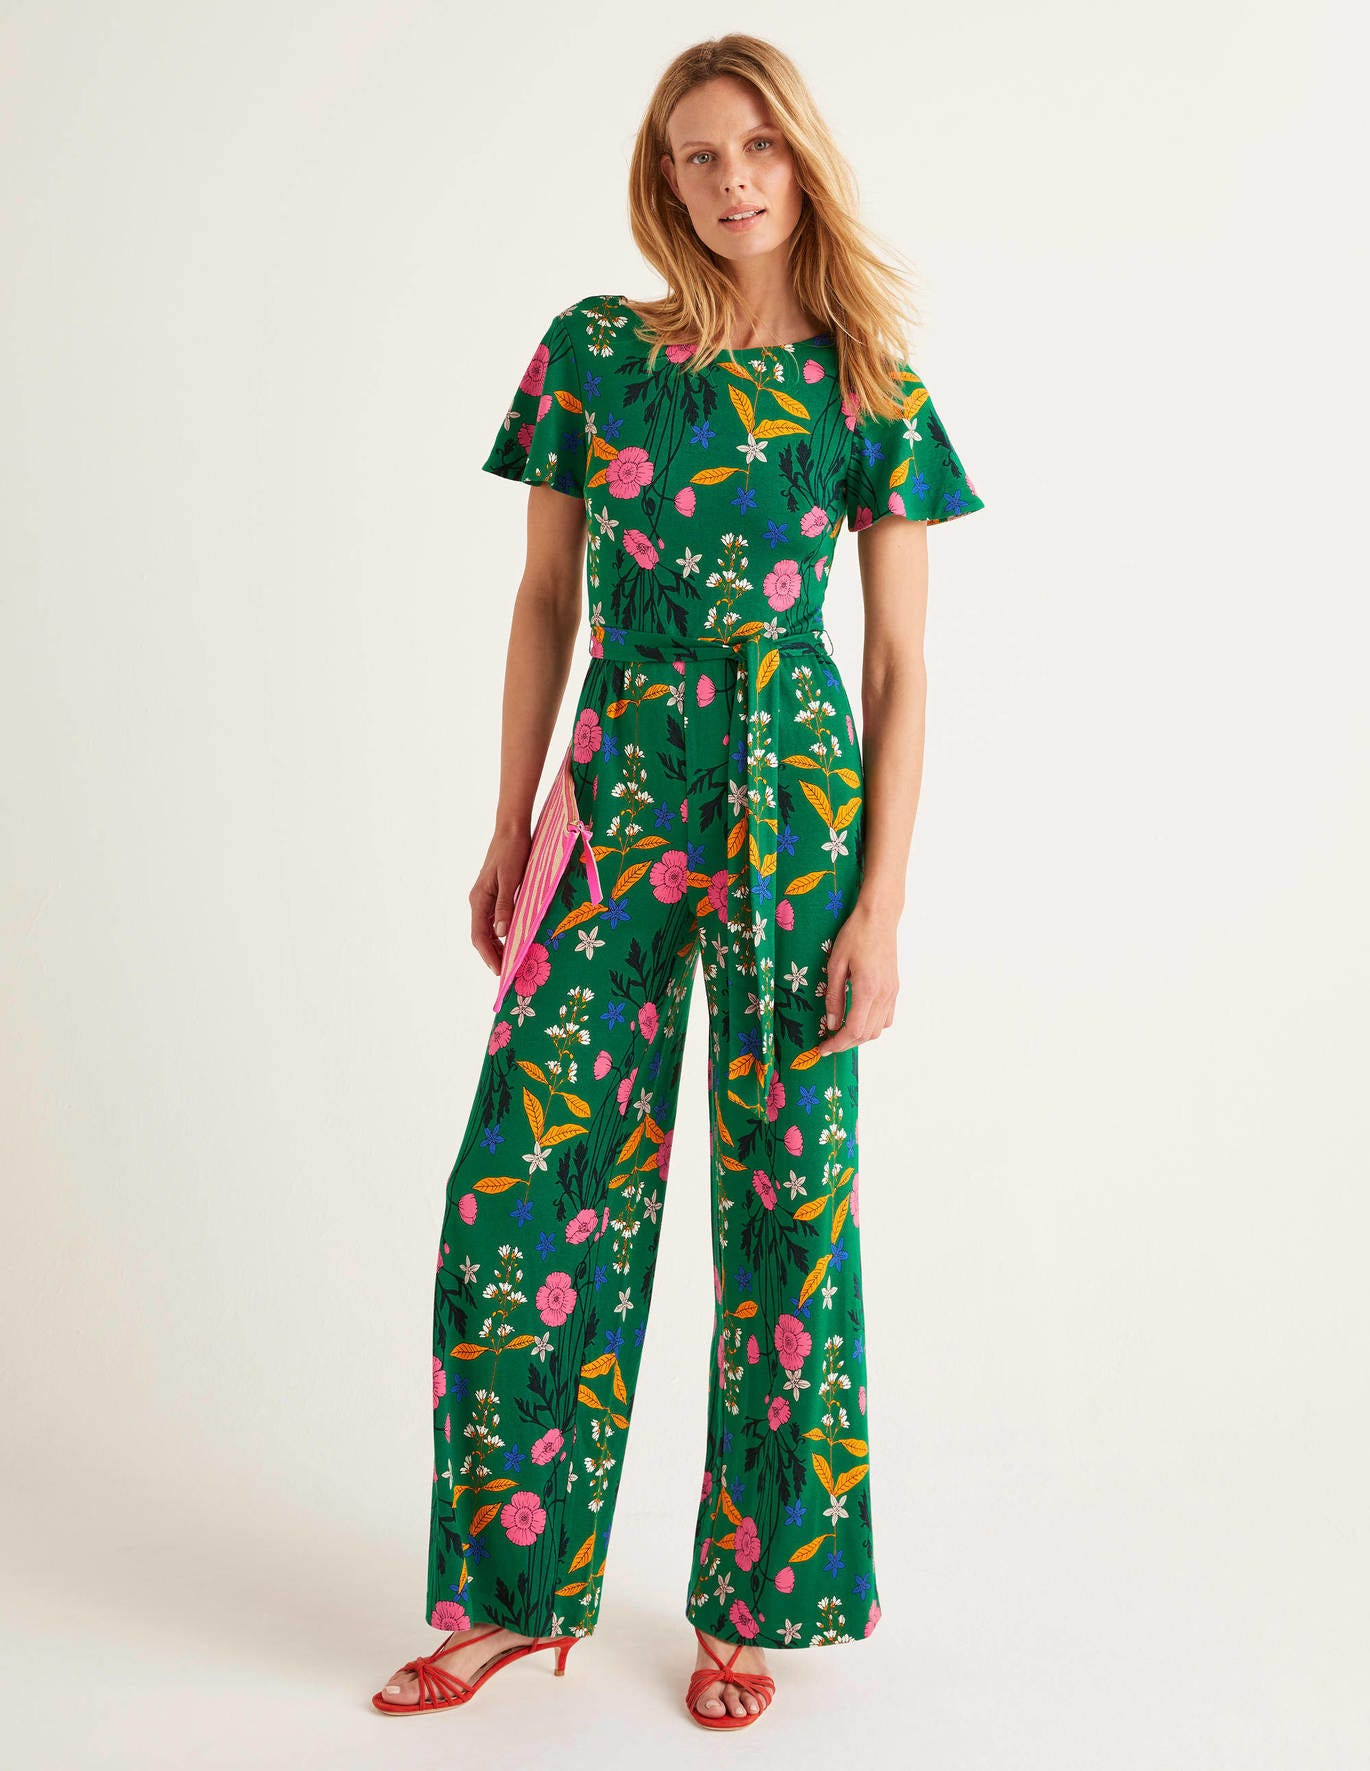 Boden Camille Ponte Jumpsuit - Forest, Garden Charm | How To Style A Jumpsuit